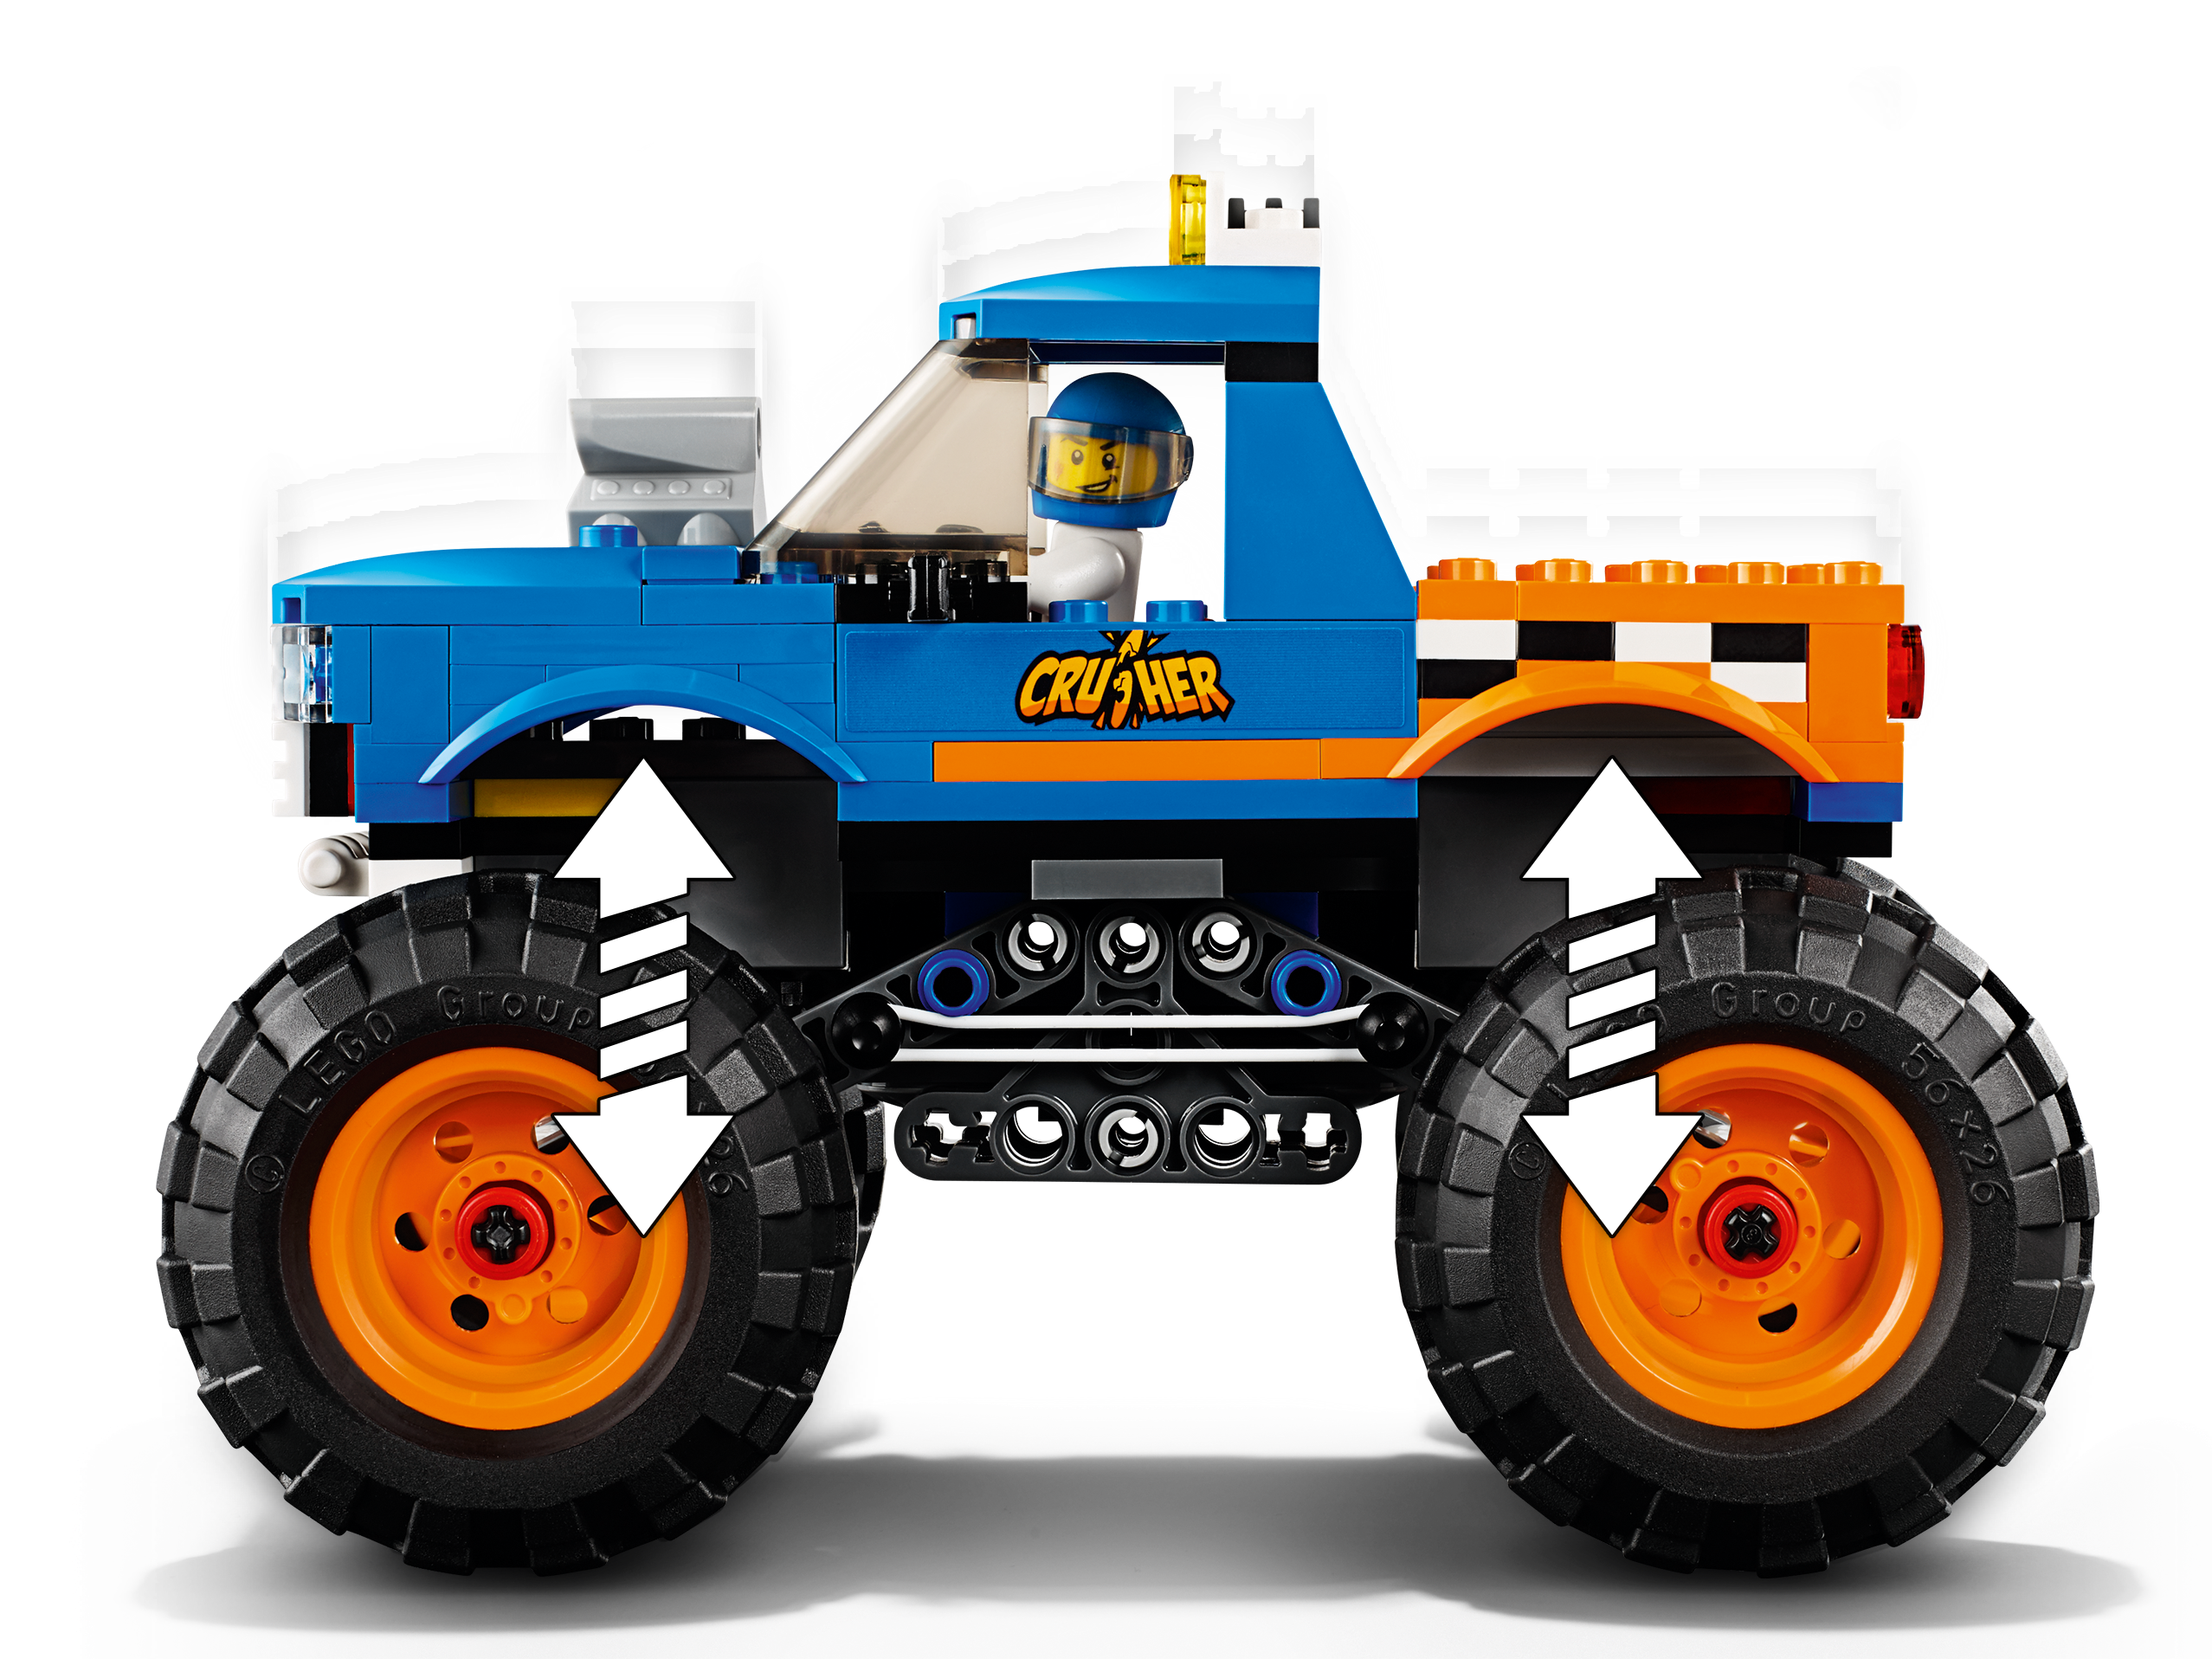 Monster Truck 60180 City Buy Online At The Official Lego Shop Us